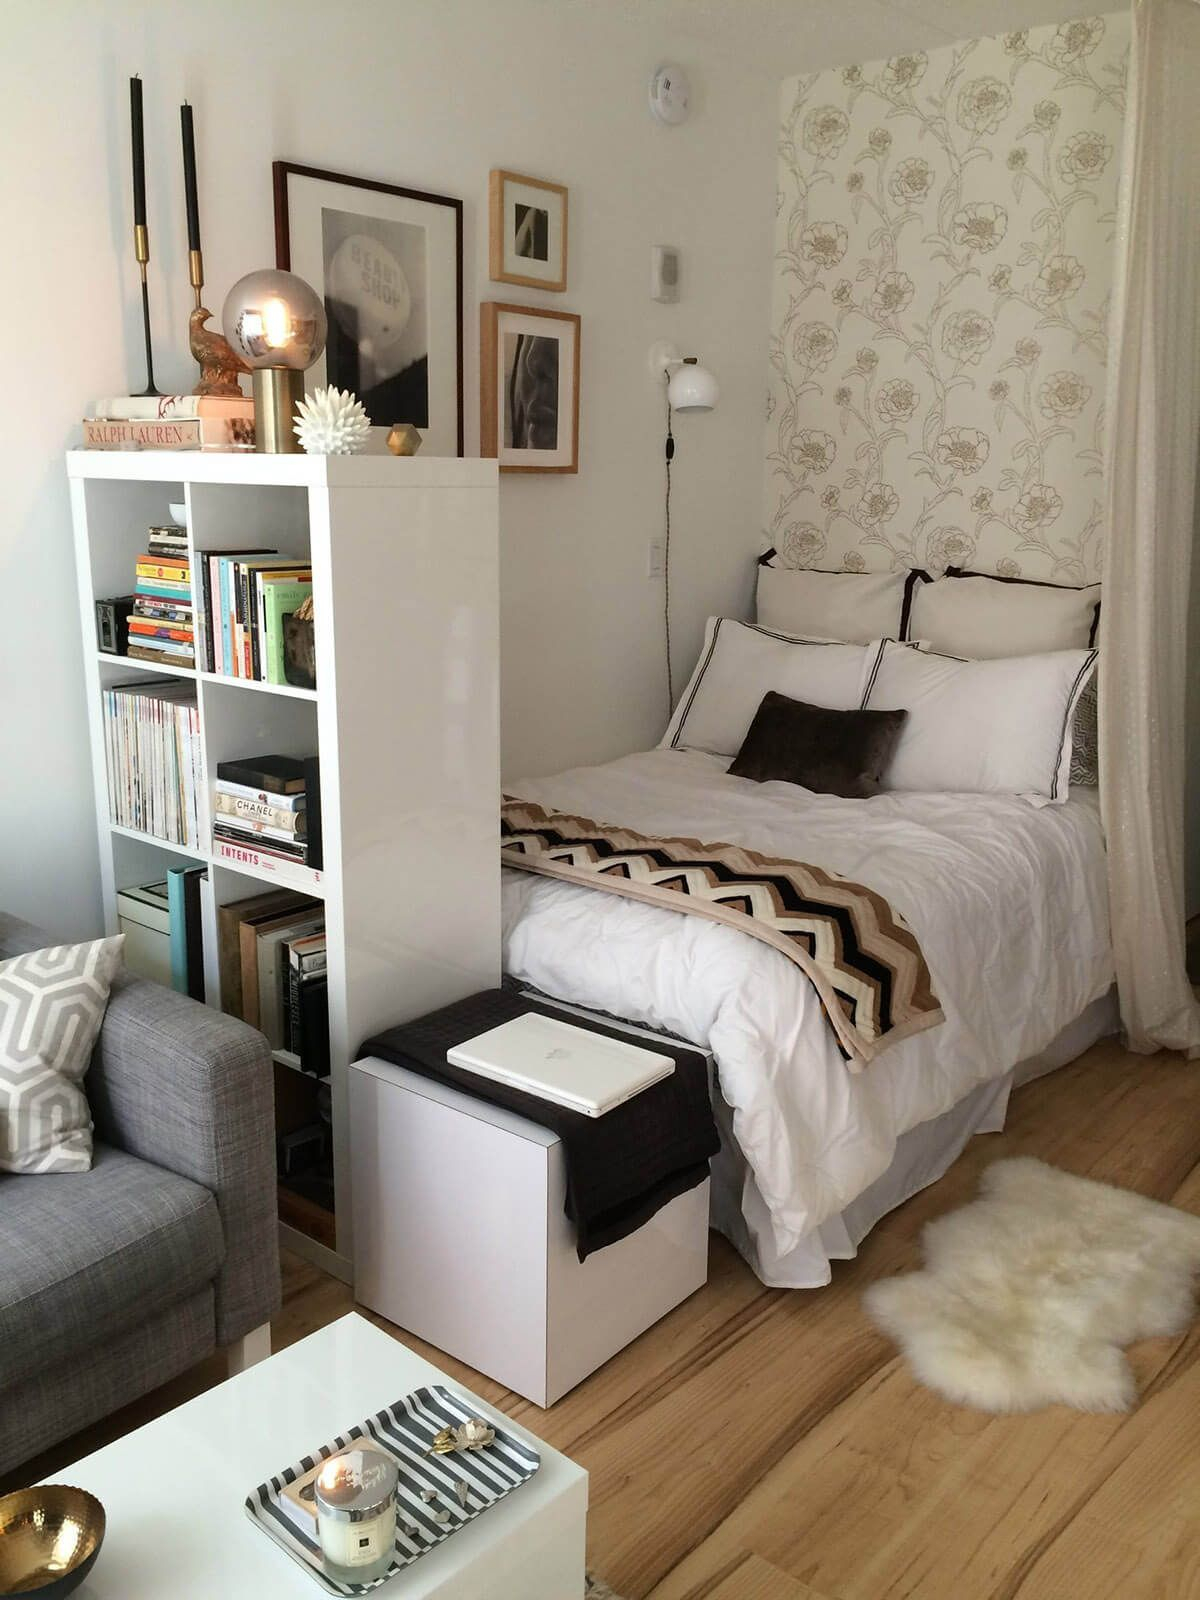 10 Spectacular Creative Ideas For Small Bedrooms small bedroom ideas with a tall bookshelf dresses n creative ideas